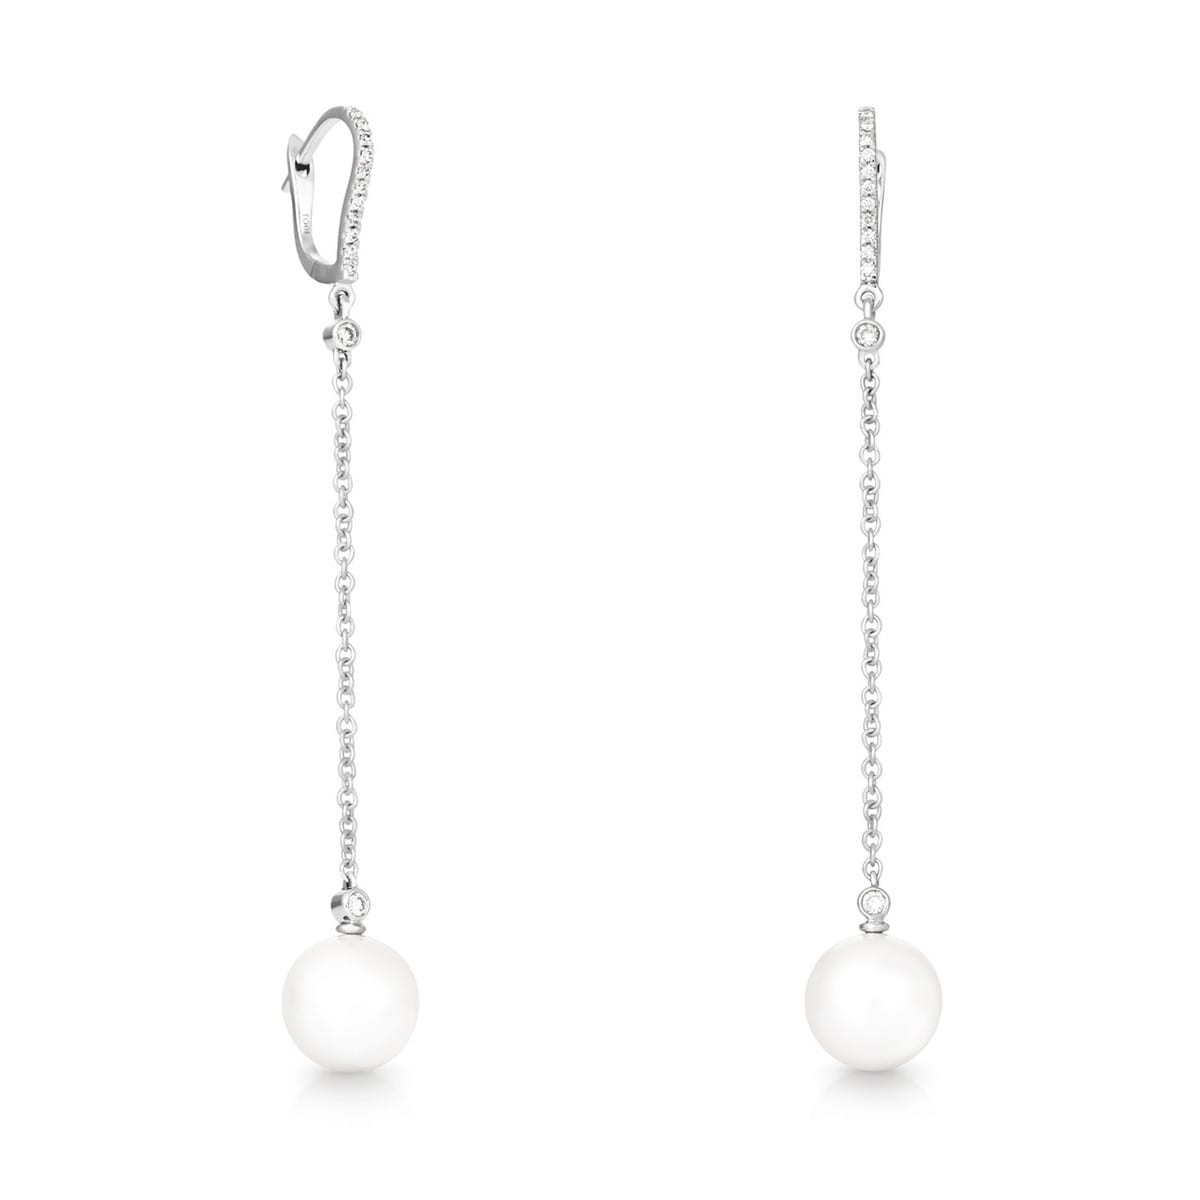 Arracades TOUS Pearls d'Or blanc